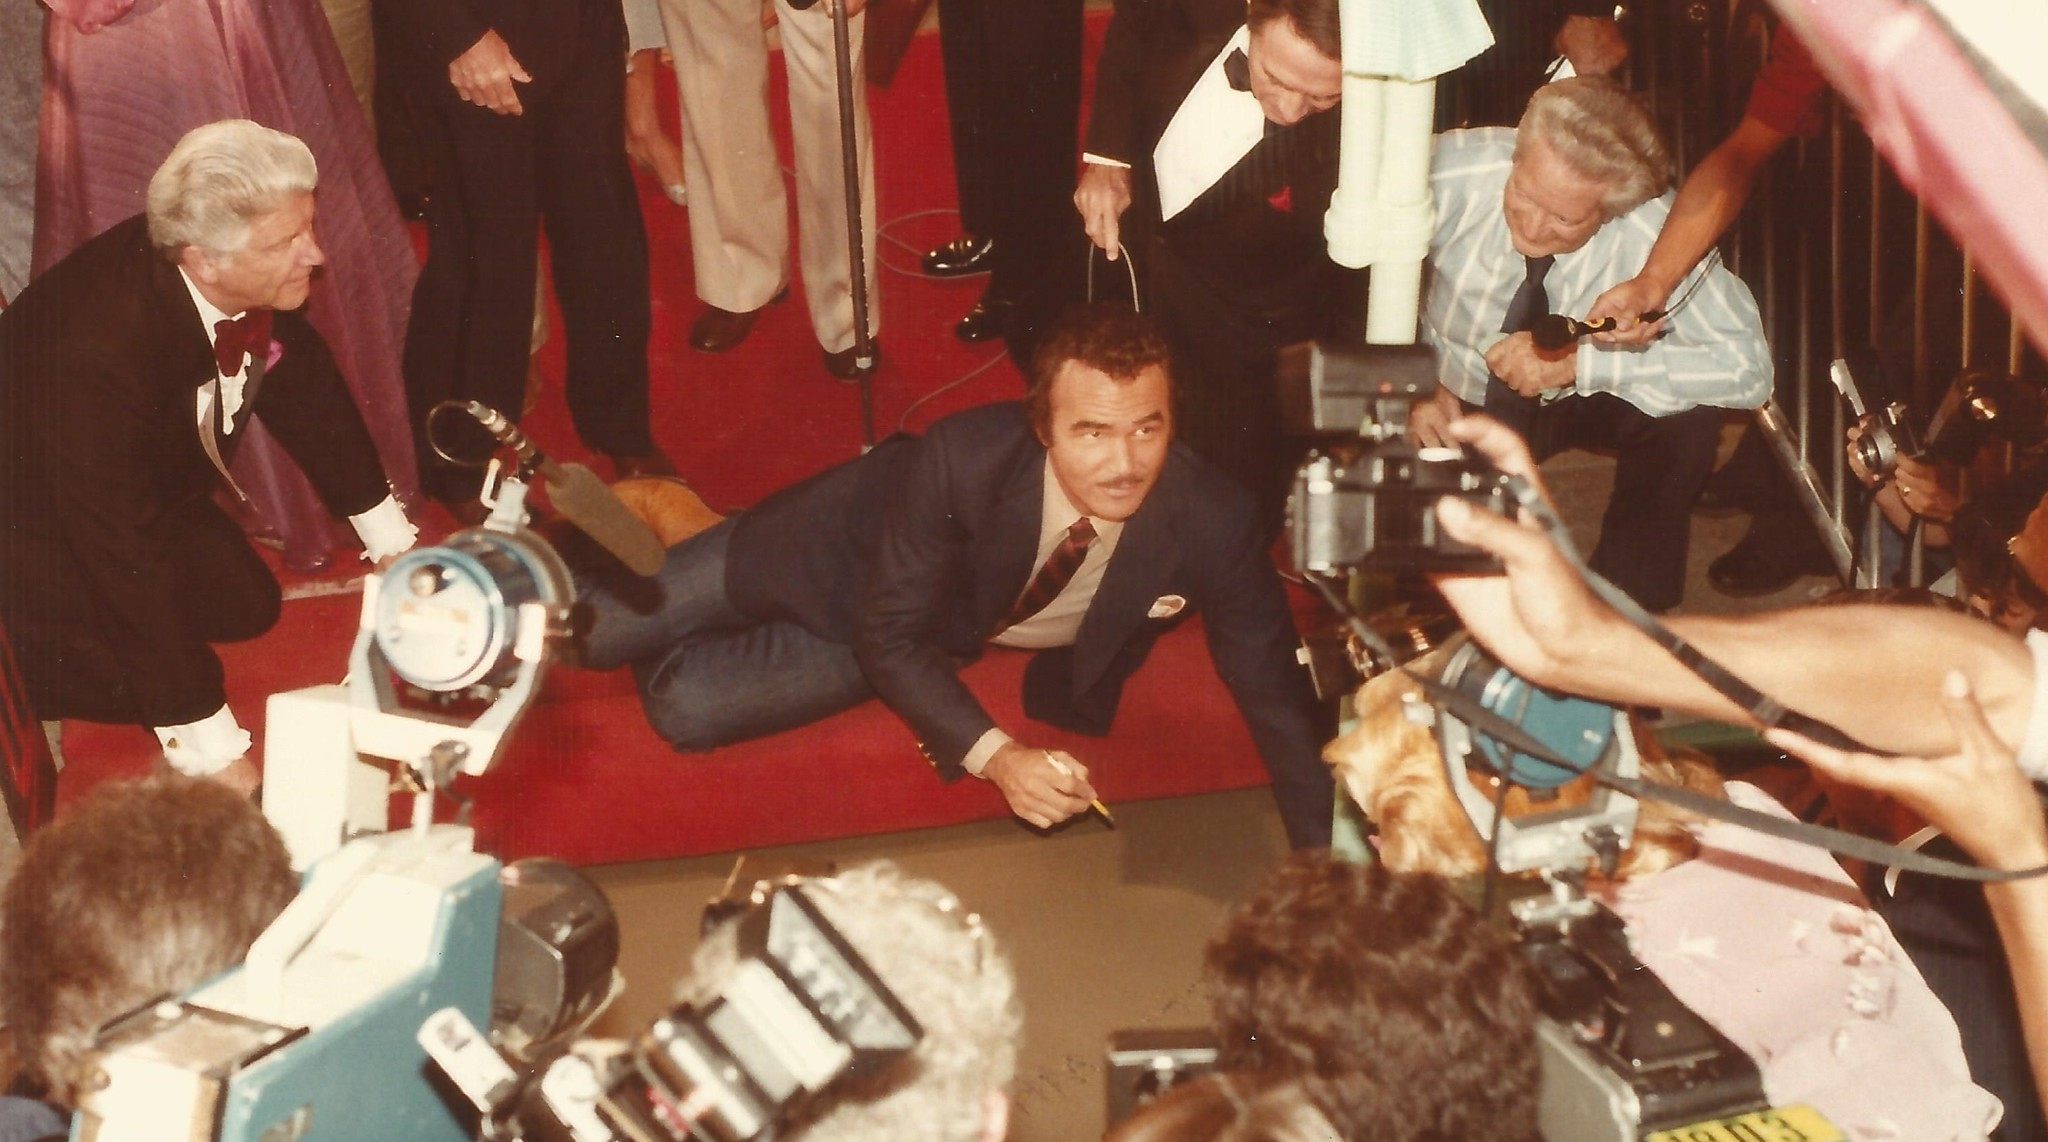 Burt Reynolds prepares to write in wet cement outside the Chinese Theatre in 1981.